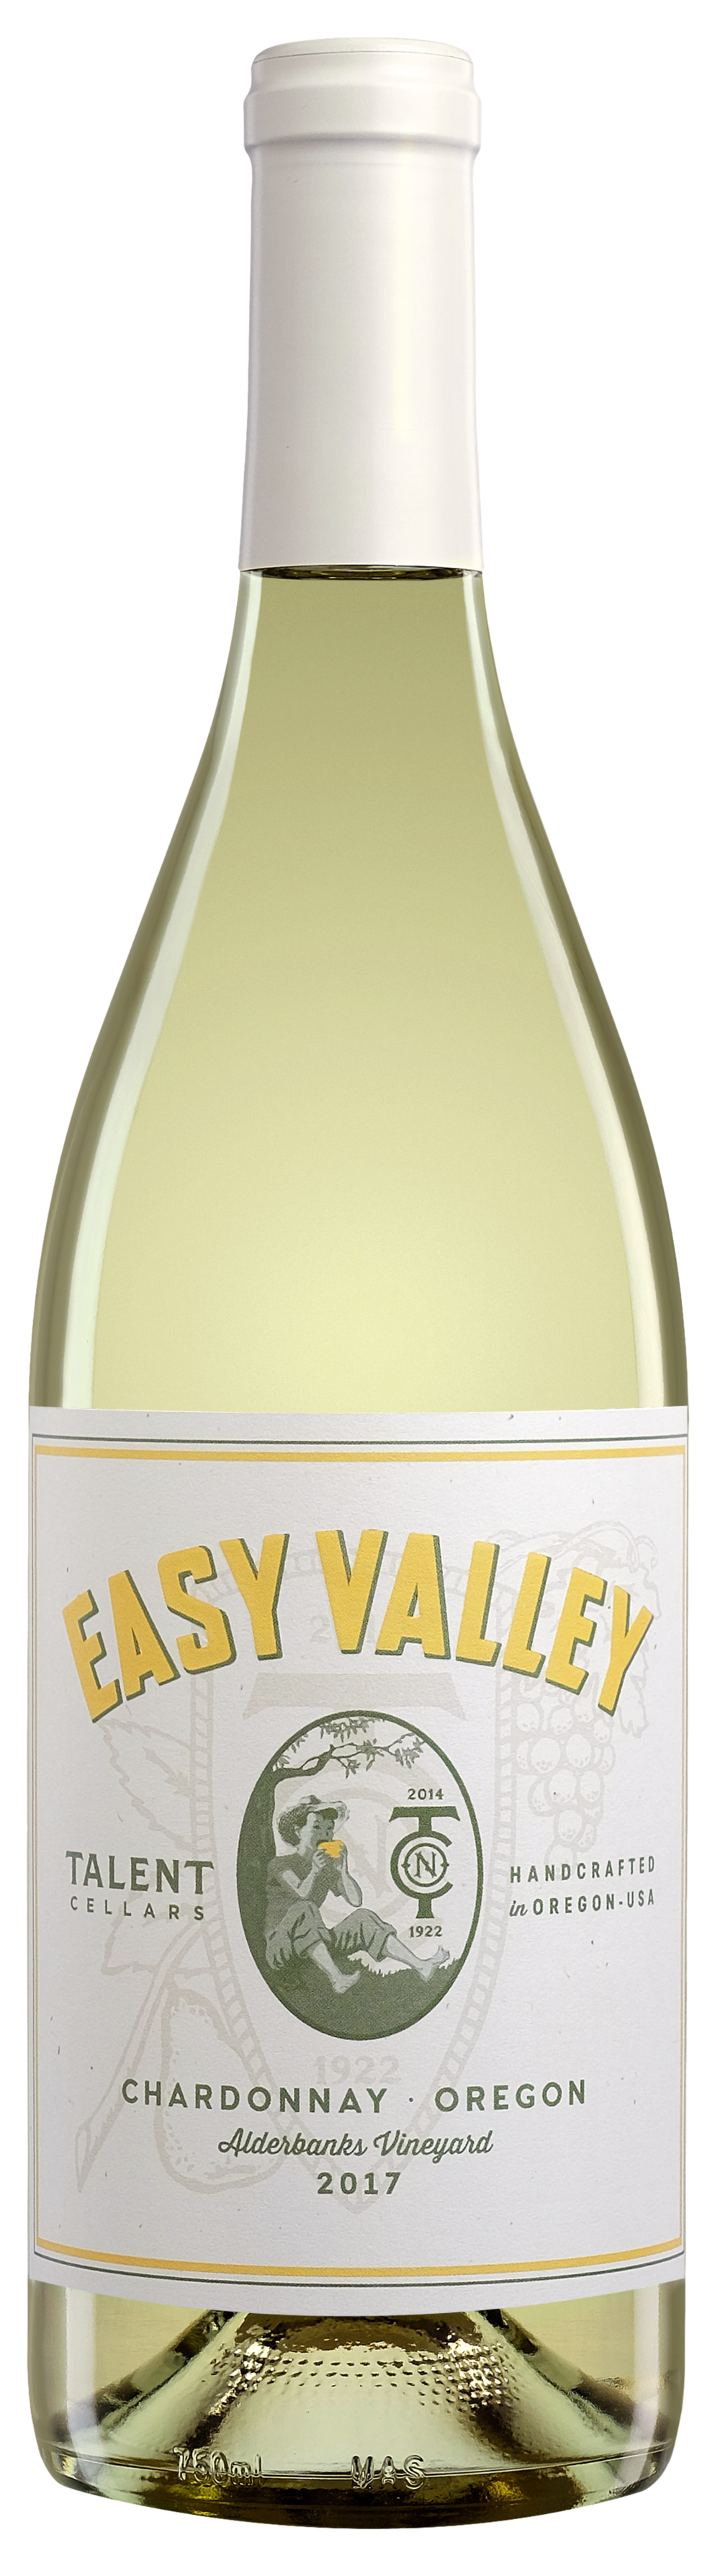 Easy Valley Chardonnay